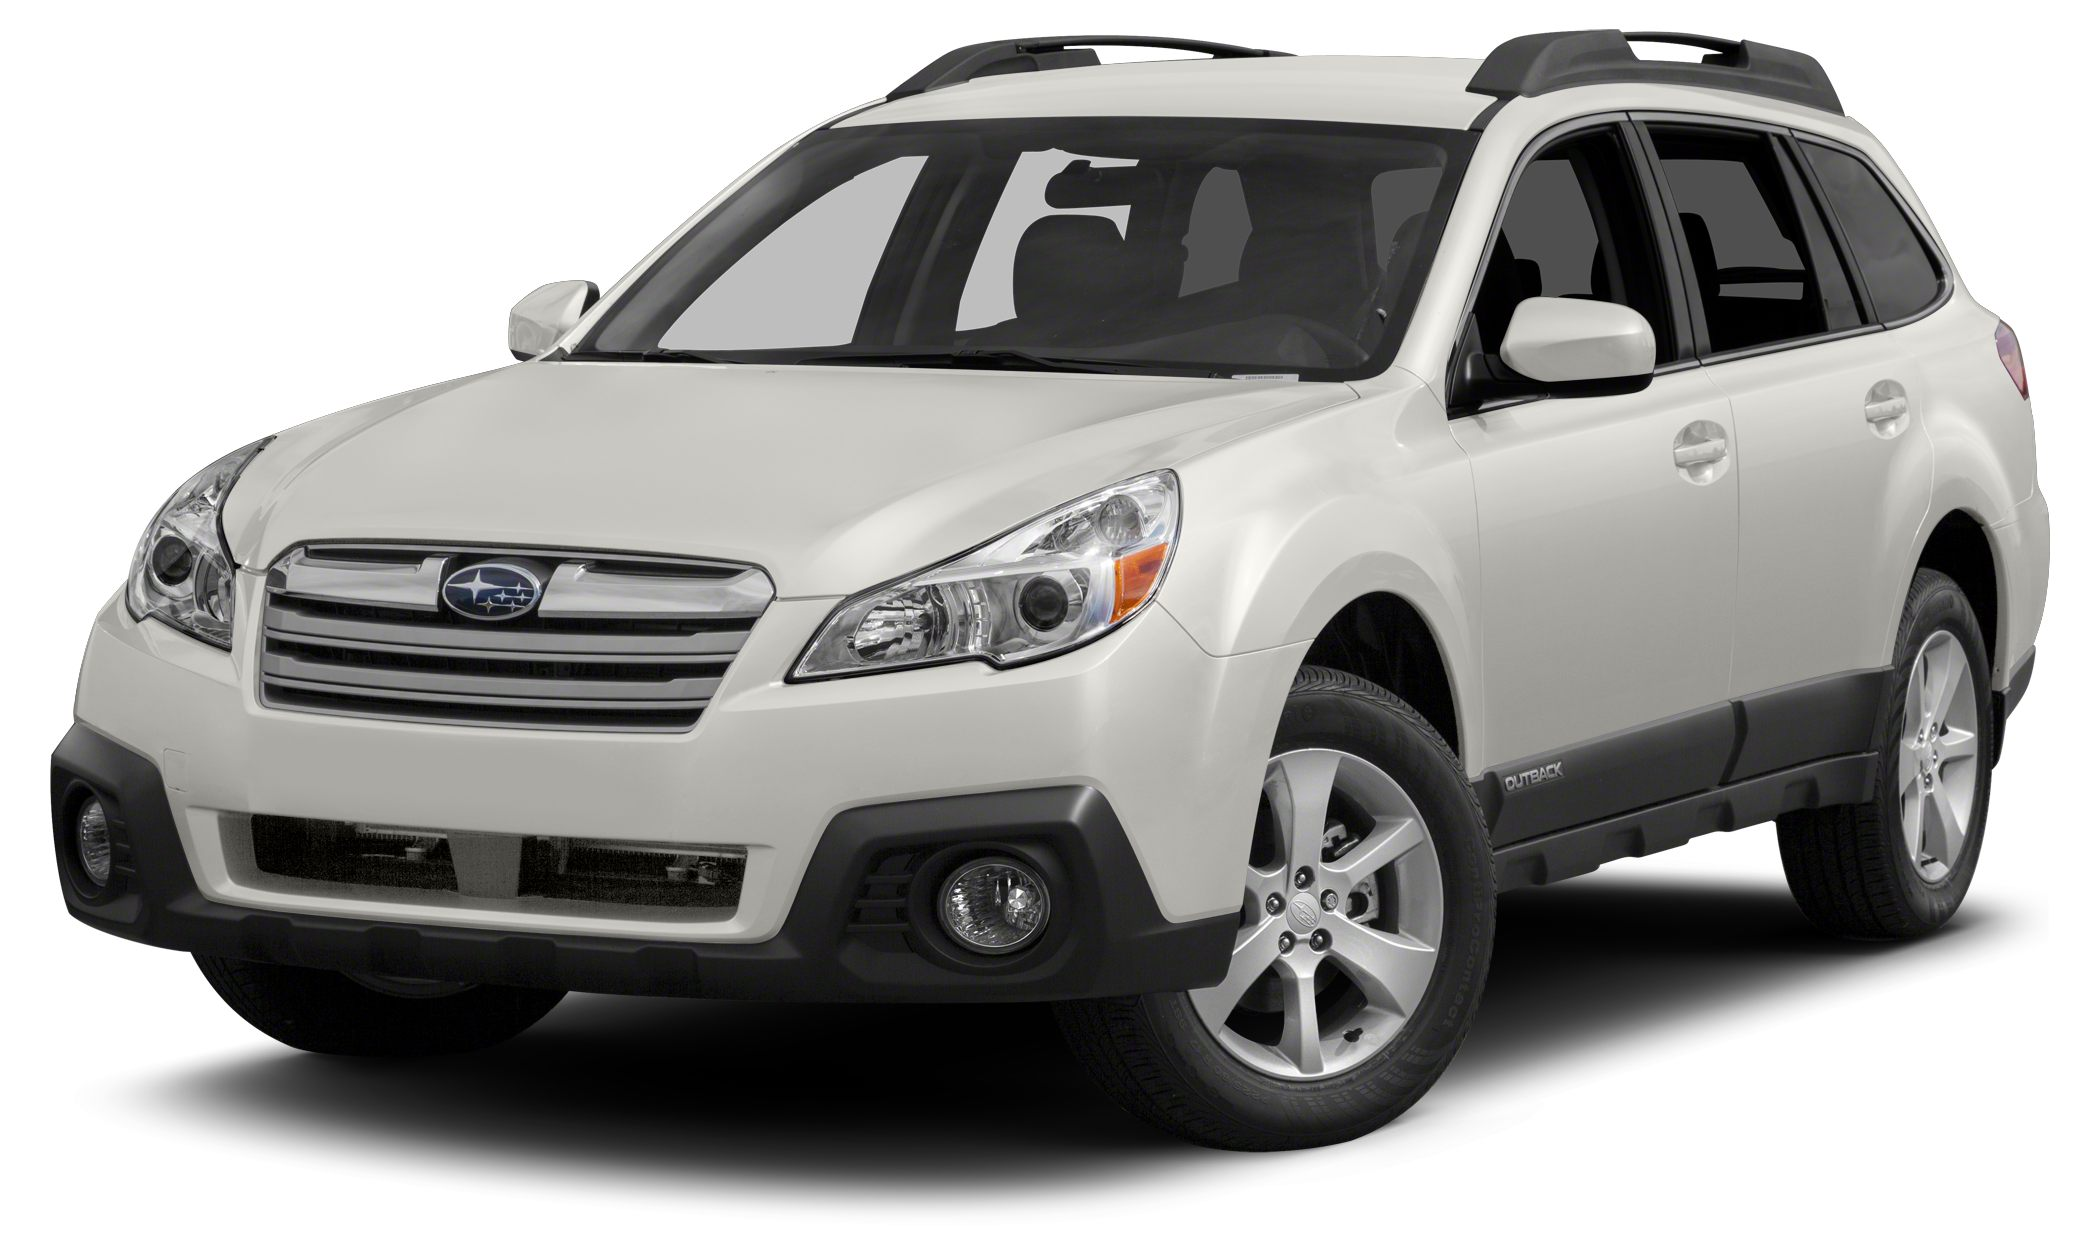 2013 Subaru Outback 25i Limited Subaru Certified Hardly driven A one-owner car and it shows Be